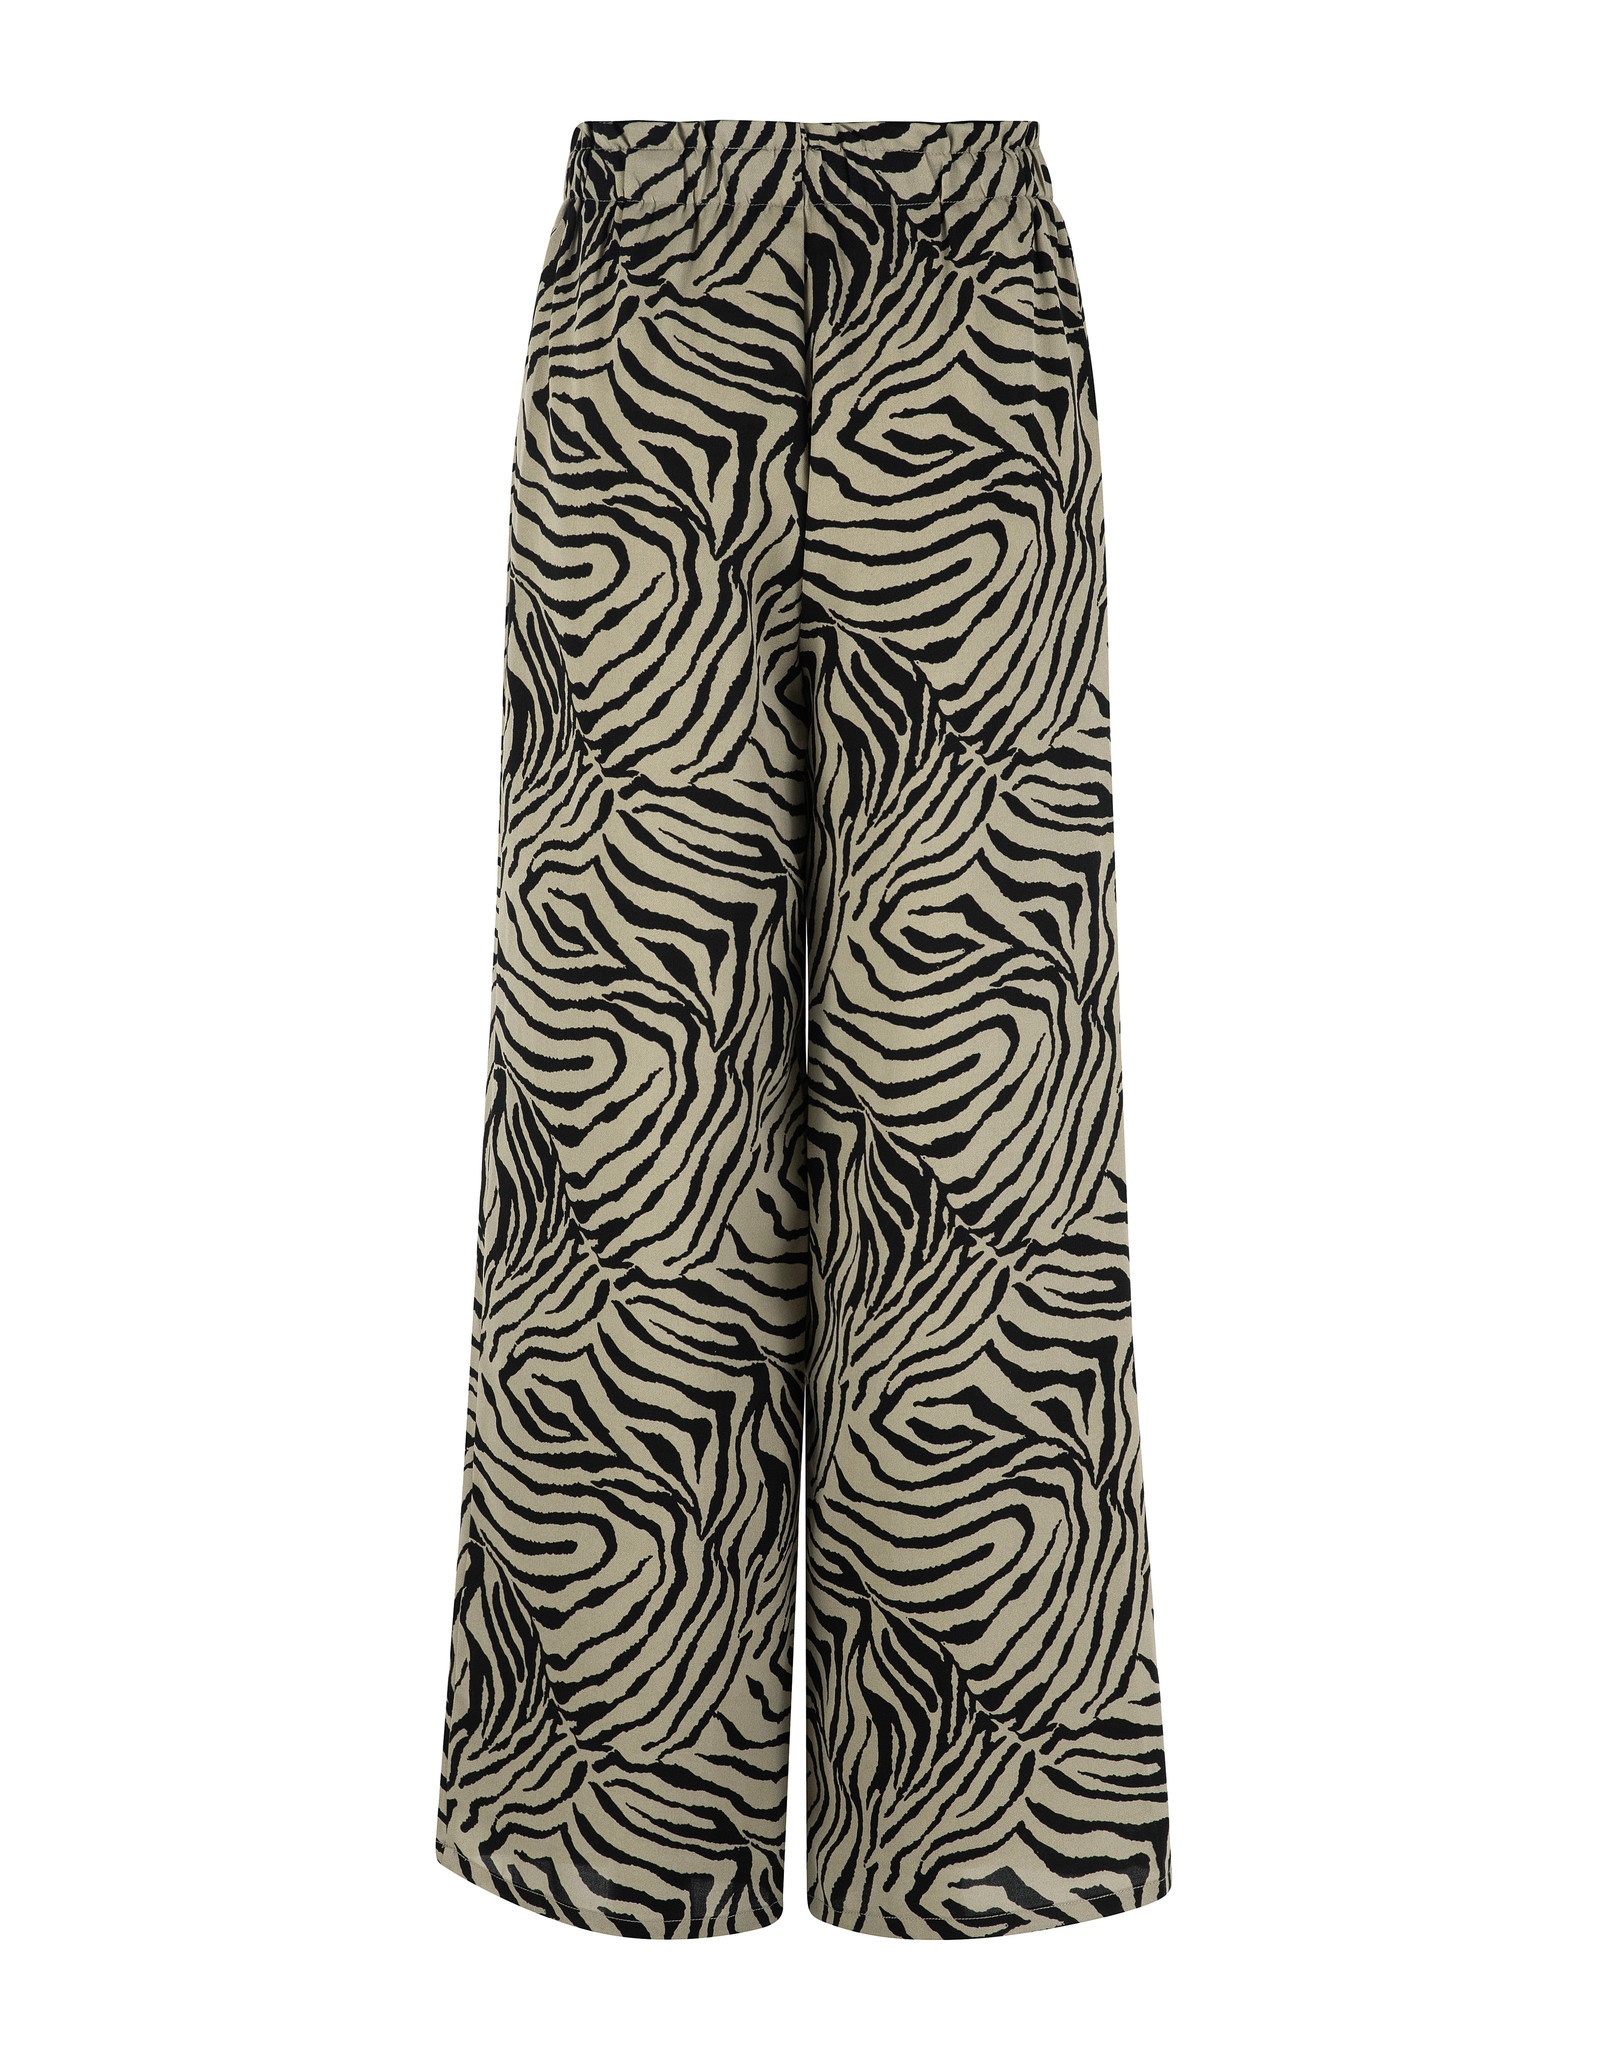 ZEBRA TROUSERS